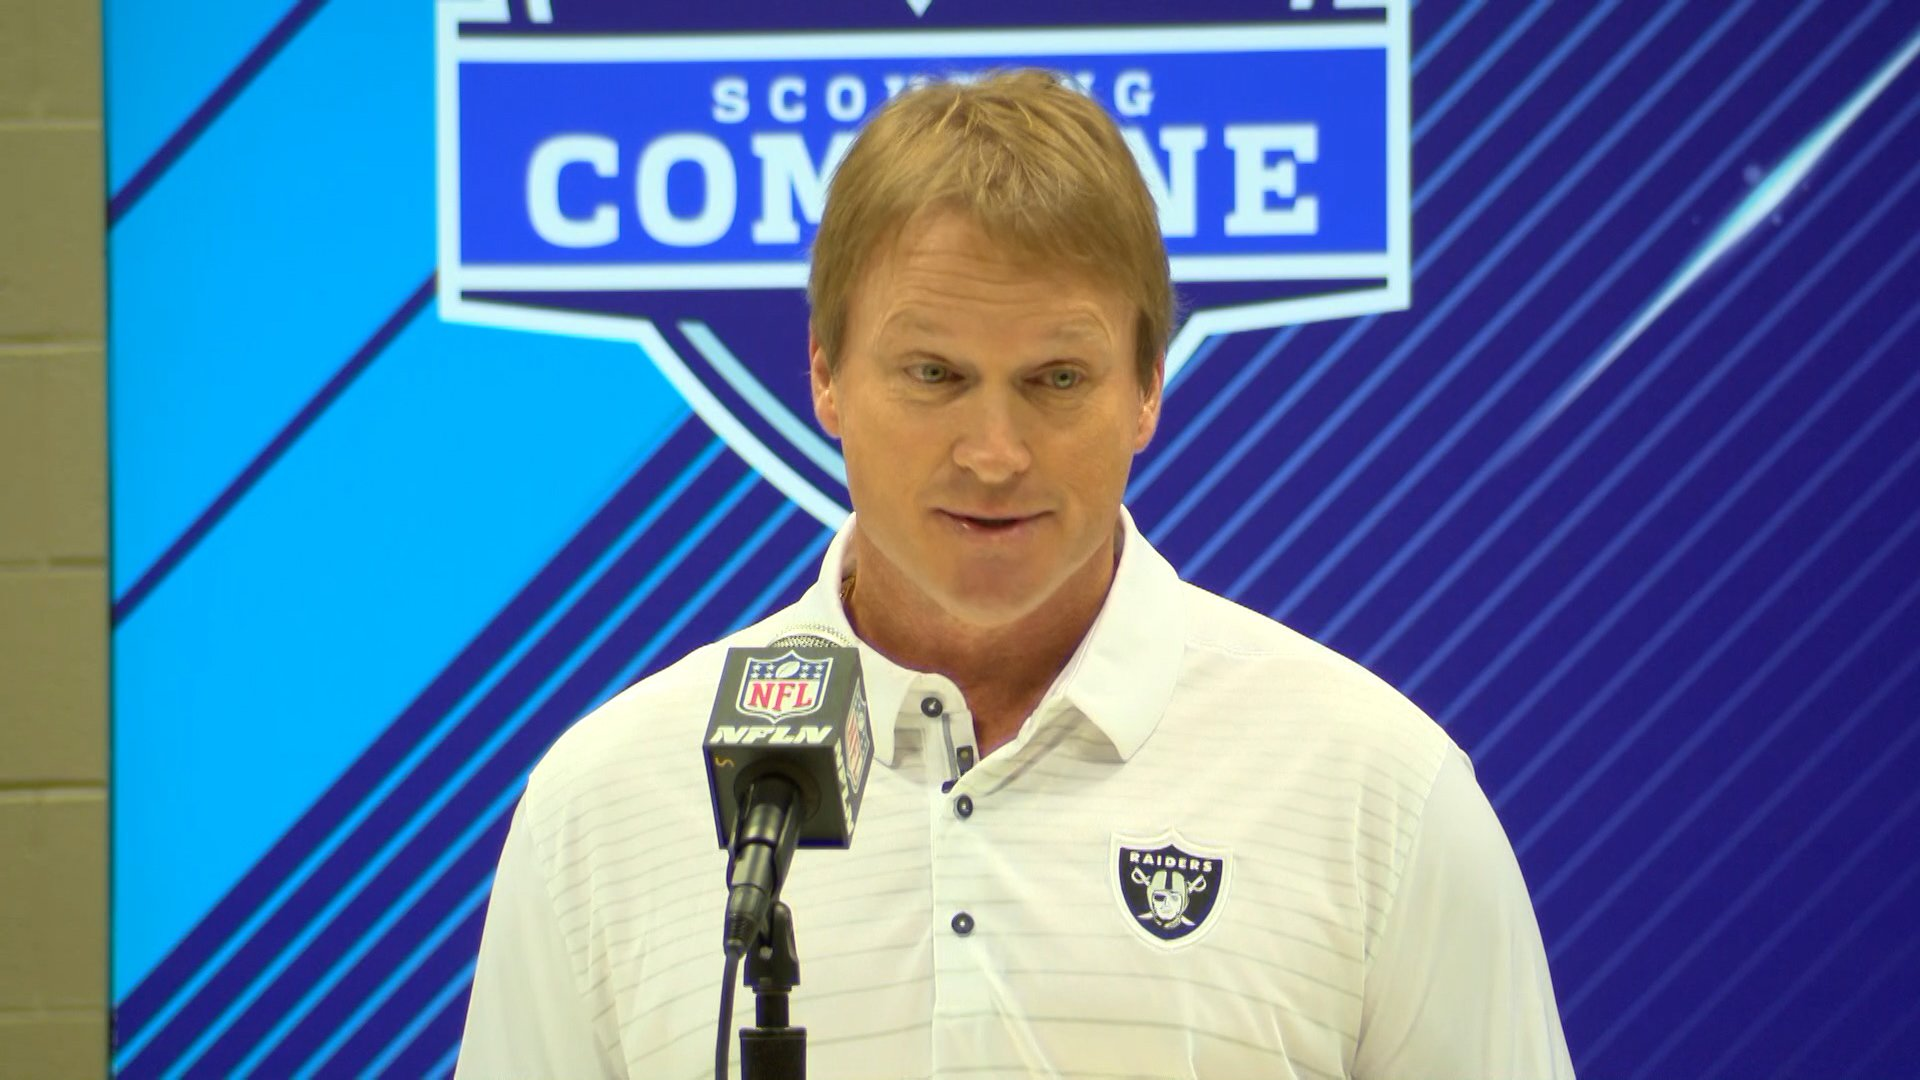 'I'm envious of the Patriots.'  Jon Gruden on what he learned from watching NE as a broadcaster: https://t.co/9V2On34yob